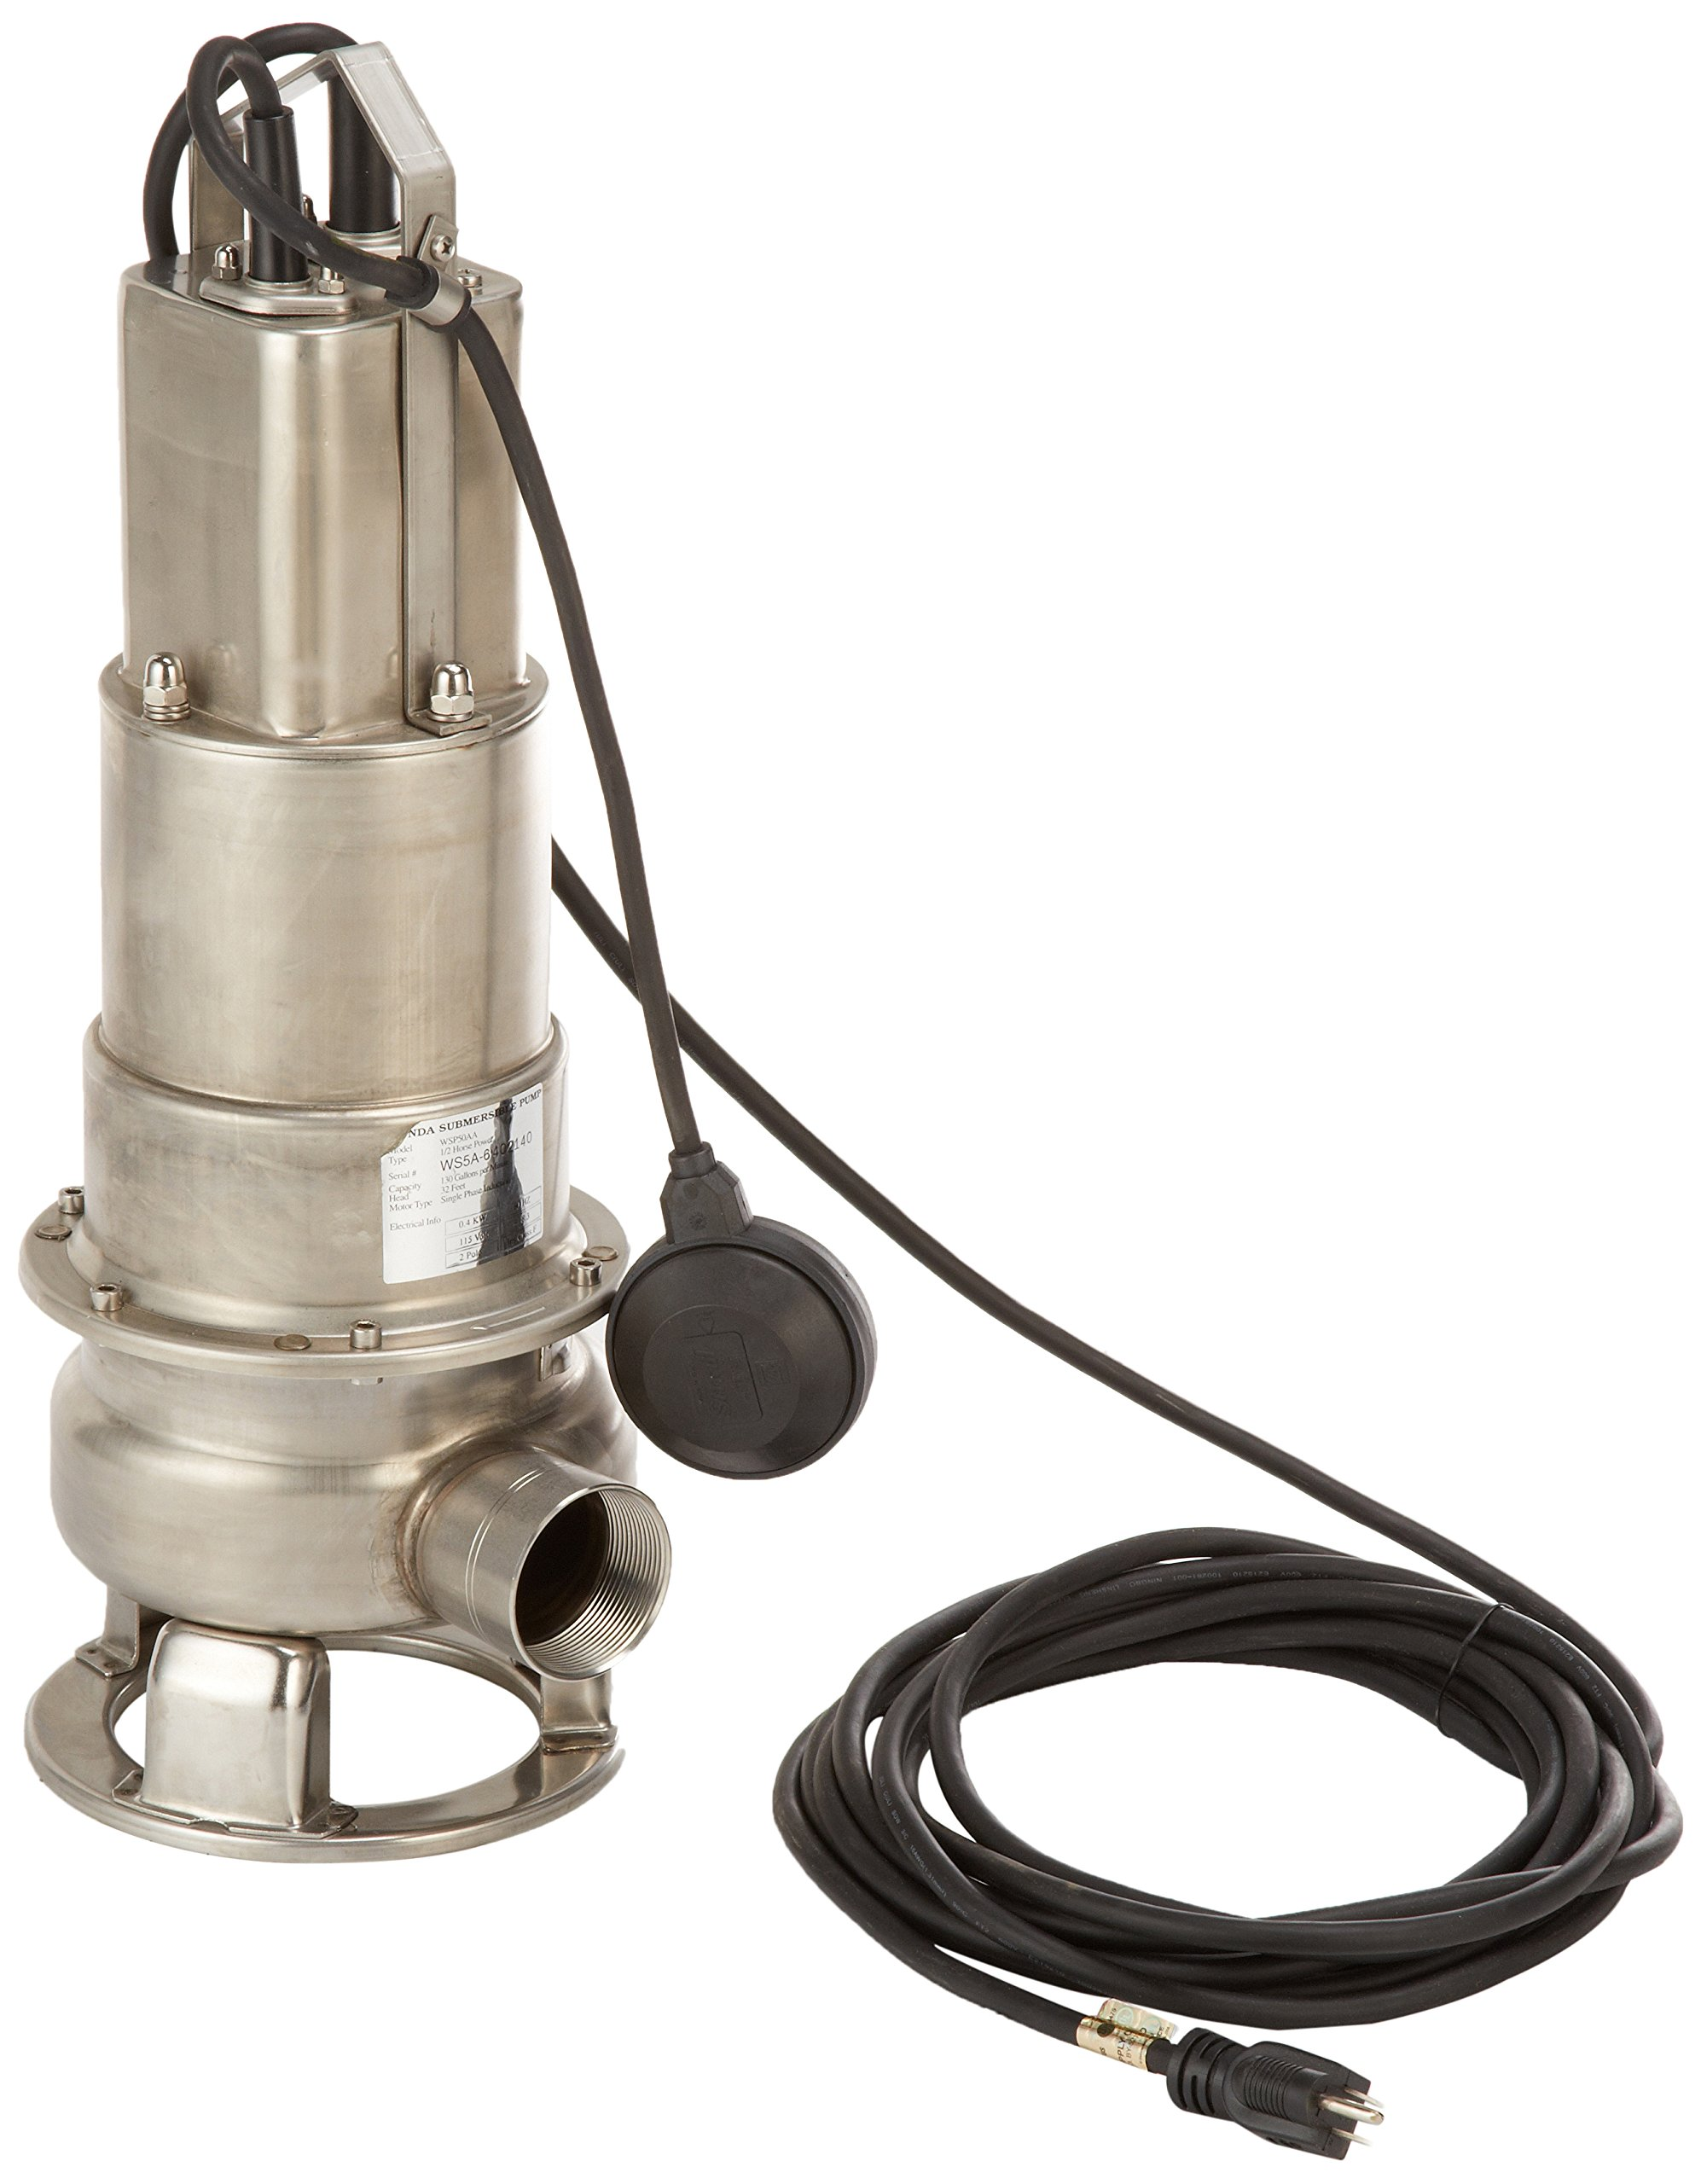 Honda WSP50 Submersible Trash Pump, Side Discharge, 1/2hp 115V, 2''